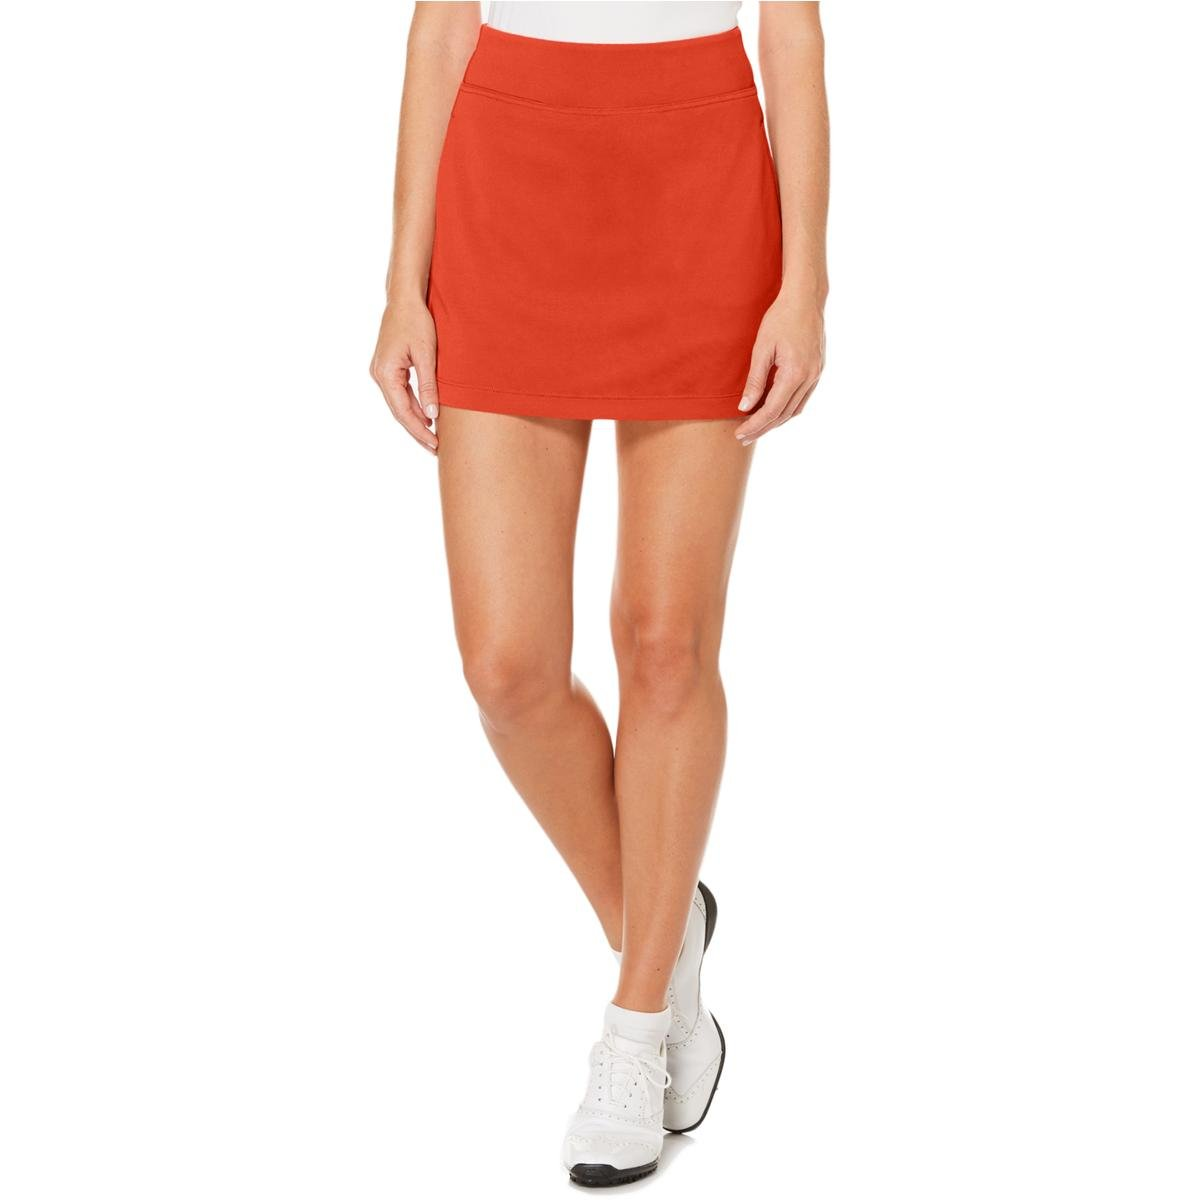 PGA TOUR Women's 16'' Airflux Solid Knit Skort with Tummy Control, Dubarry, Extra Small